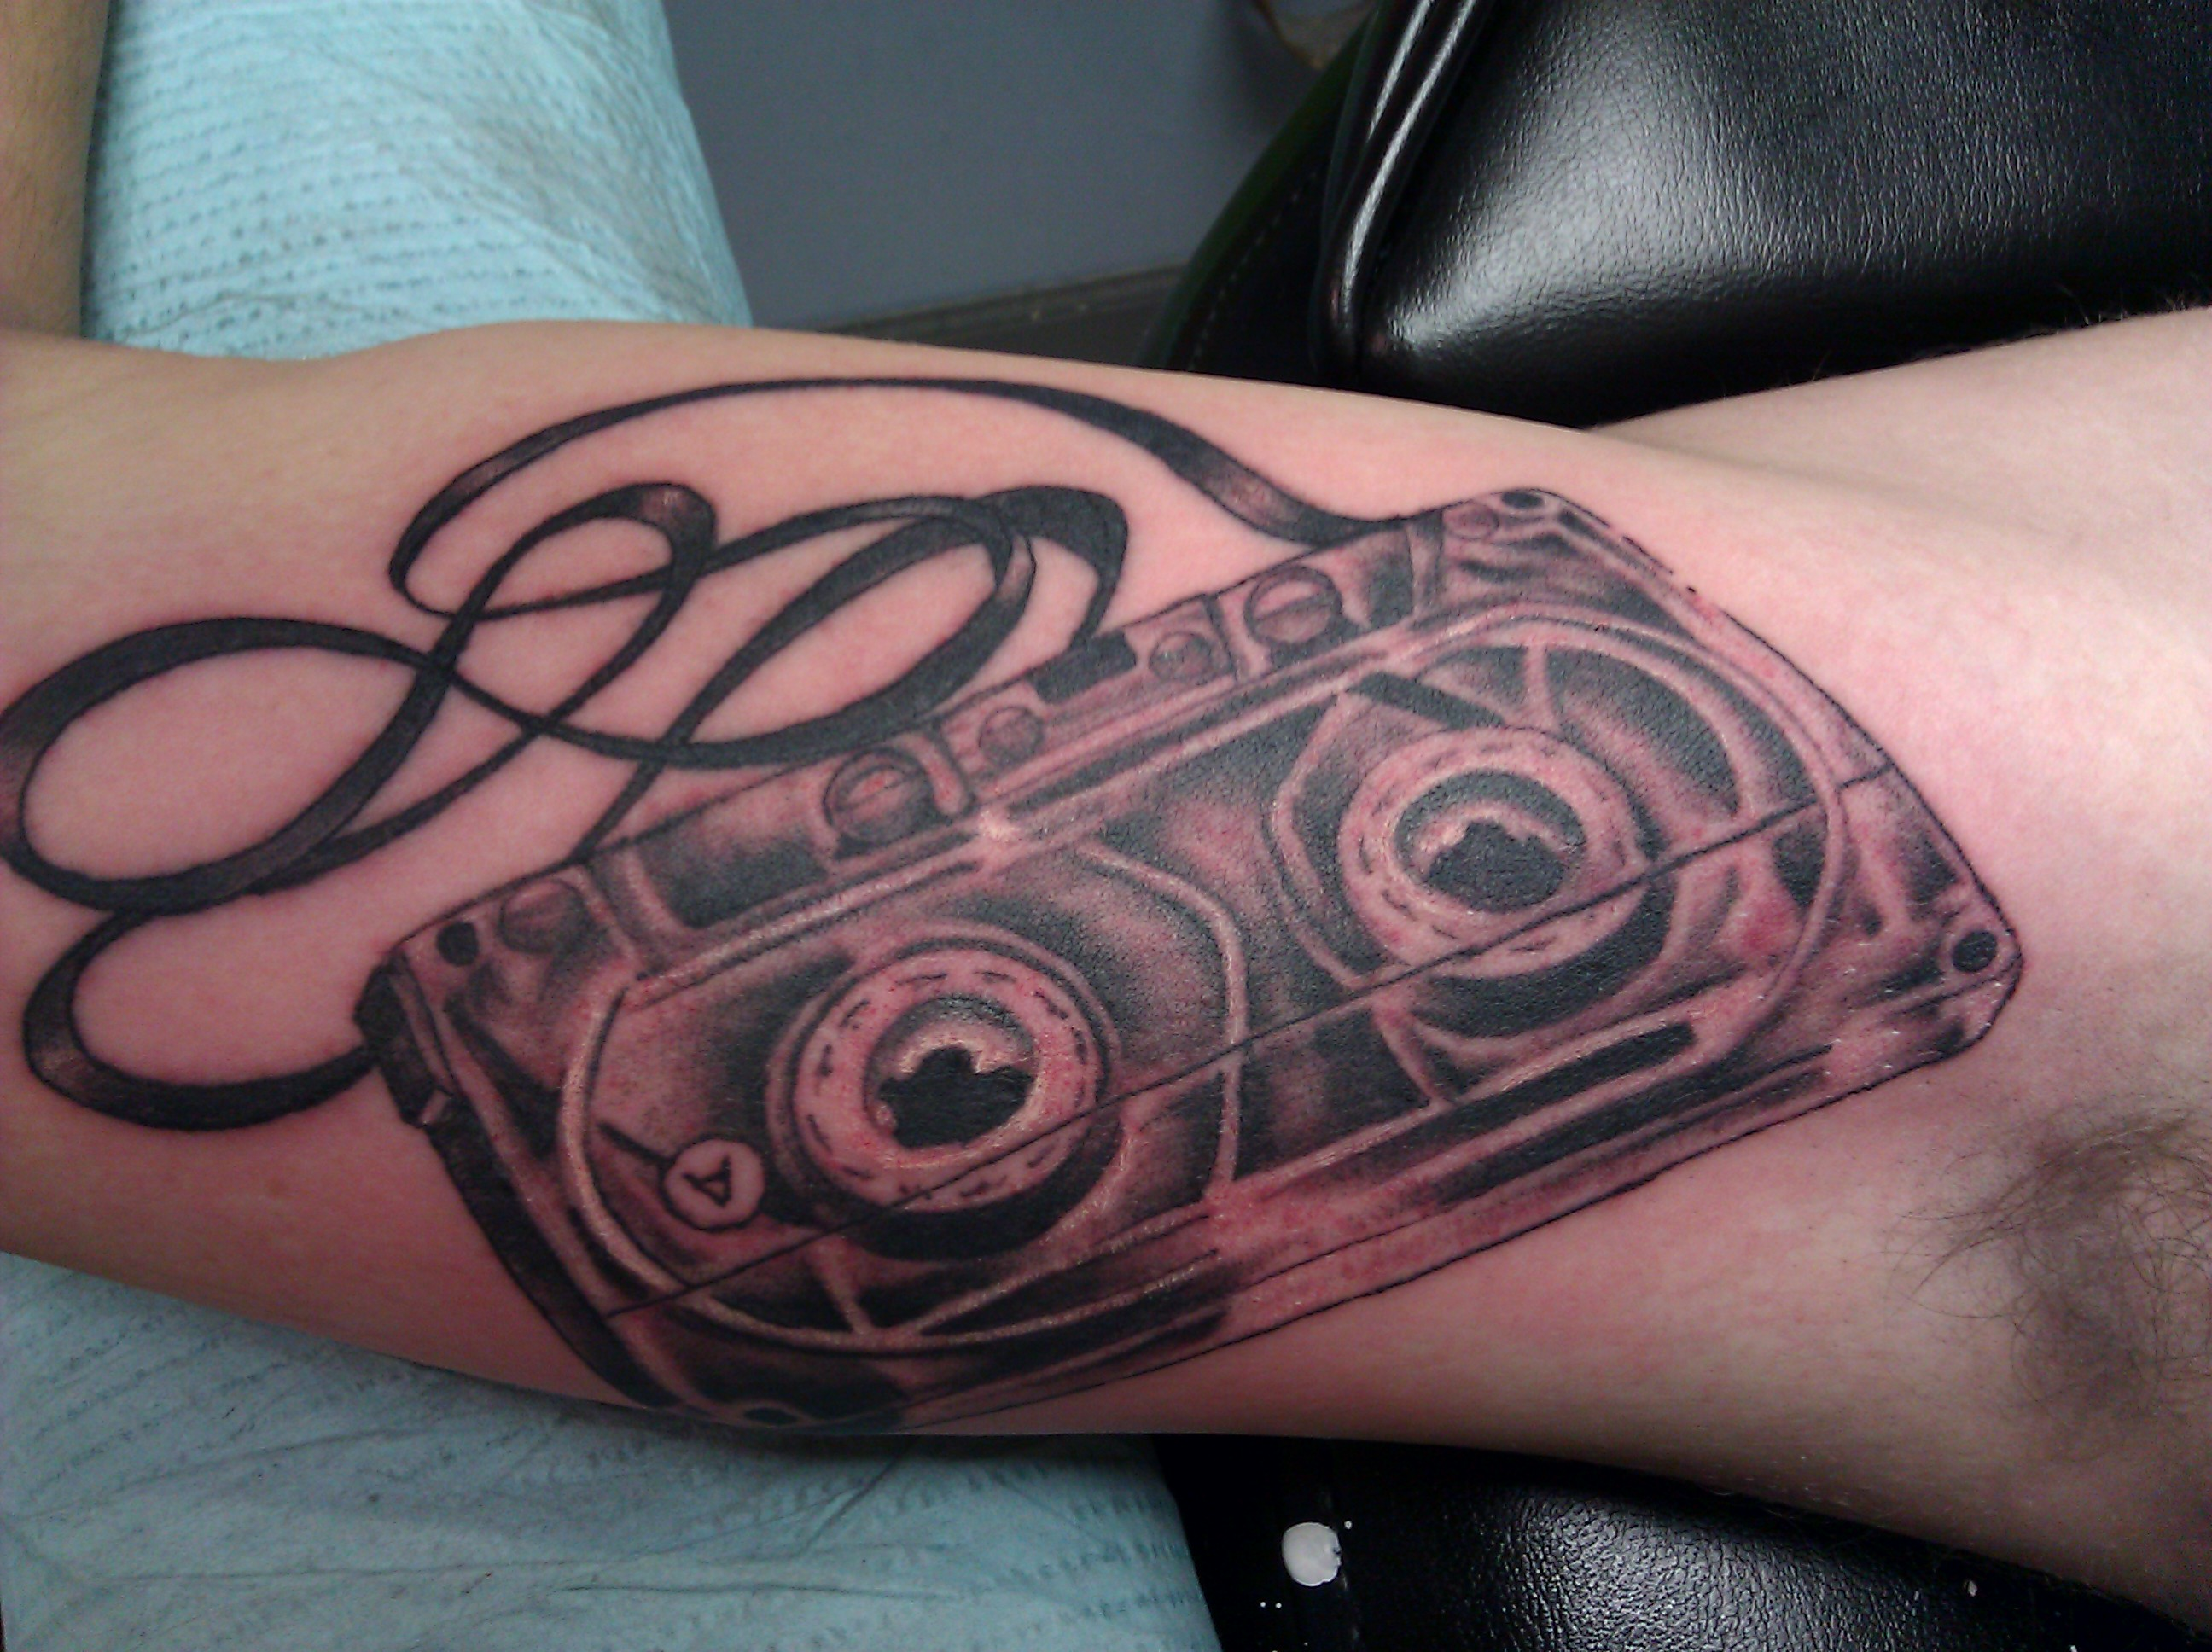 cassette tape tattoo picture. Black Bedroom Furniture Sets. Home Design Ideas